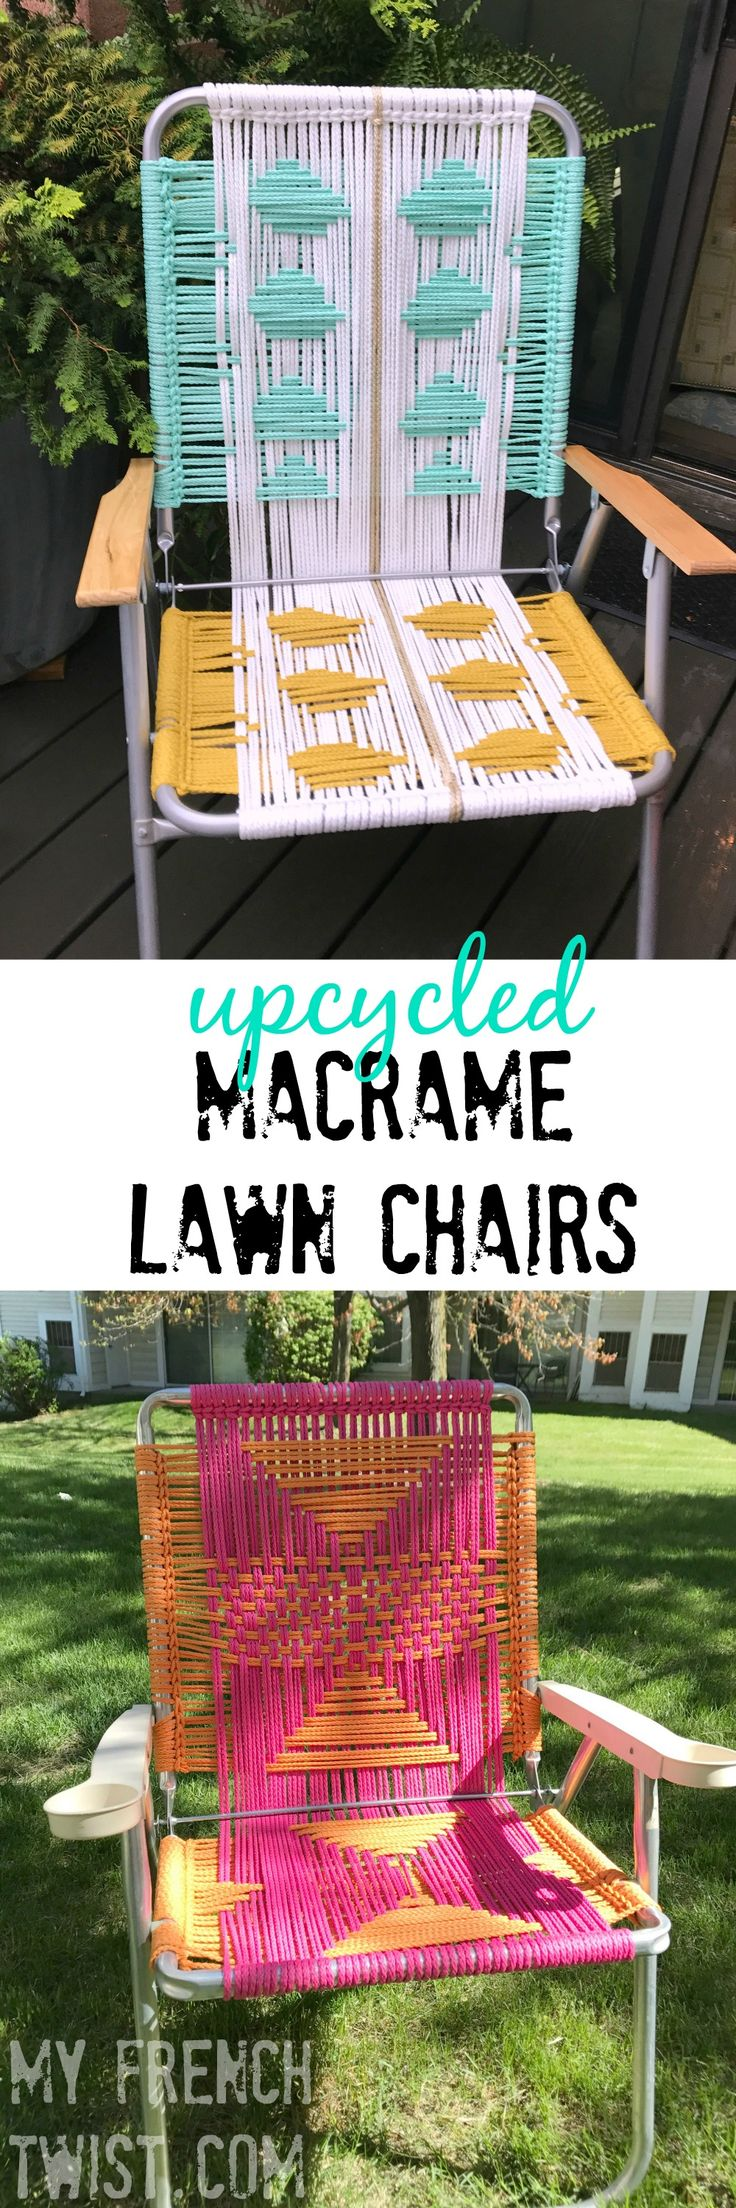 The macrame lawn chair tutorial you've been waiting for is here! myfrenchtwist.com